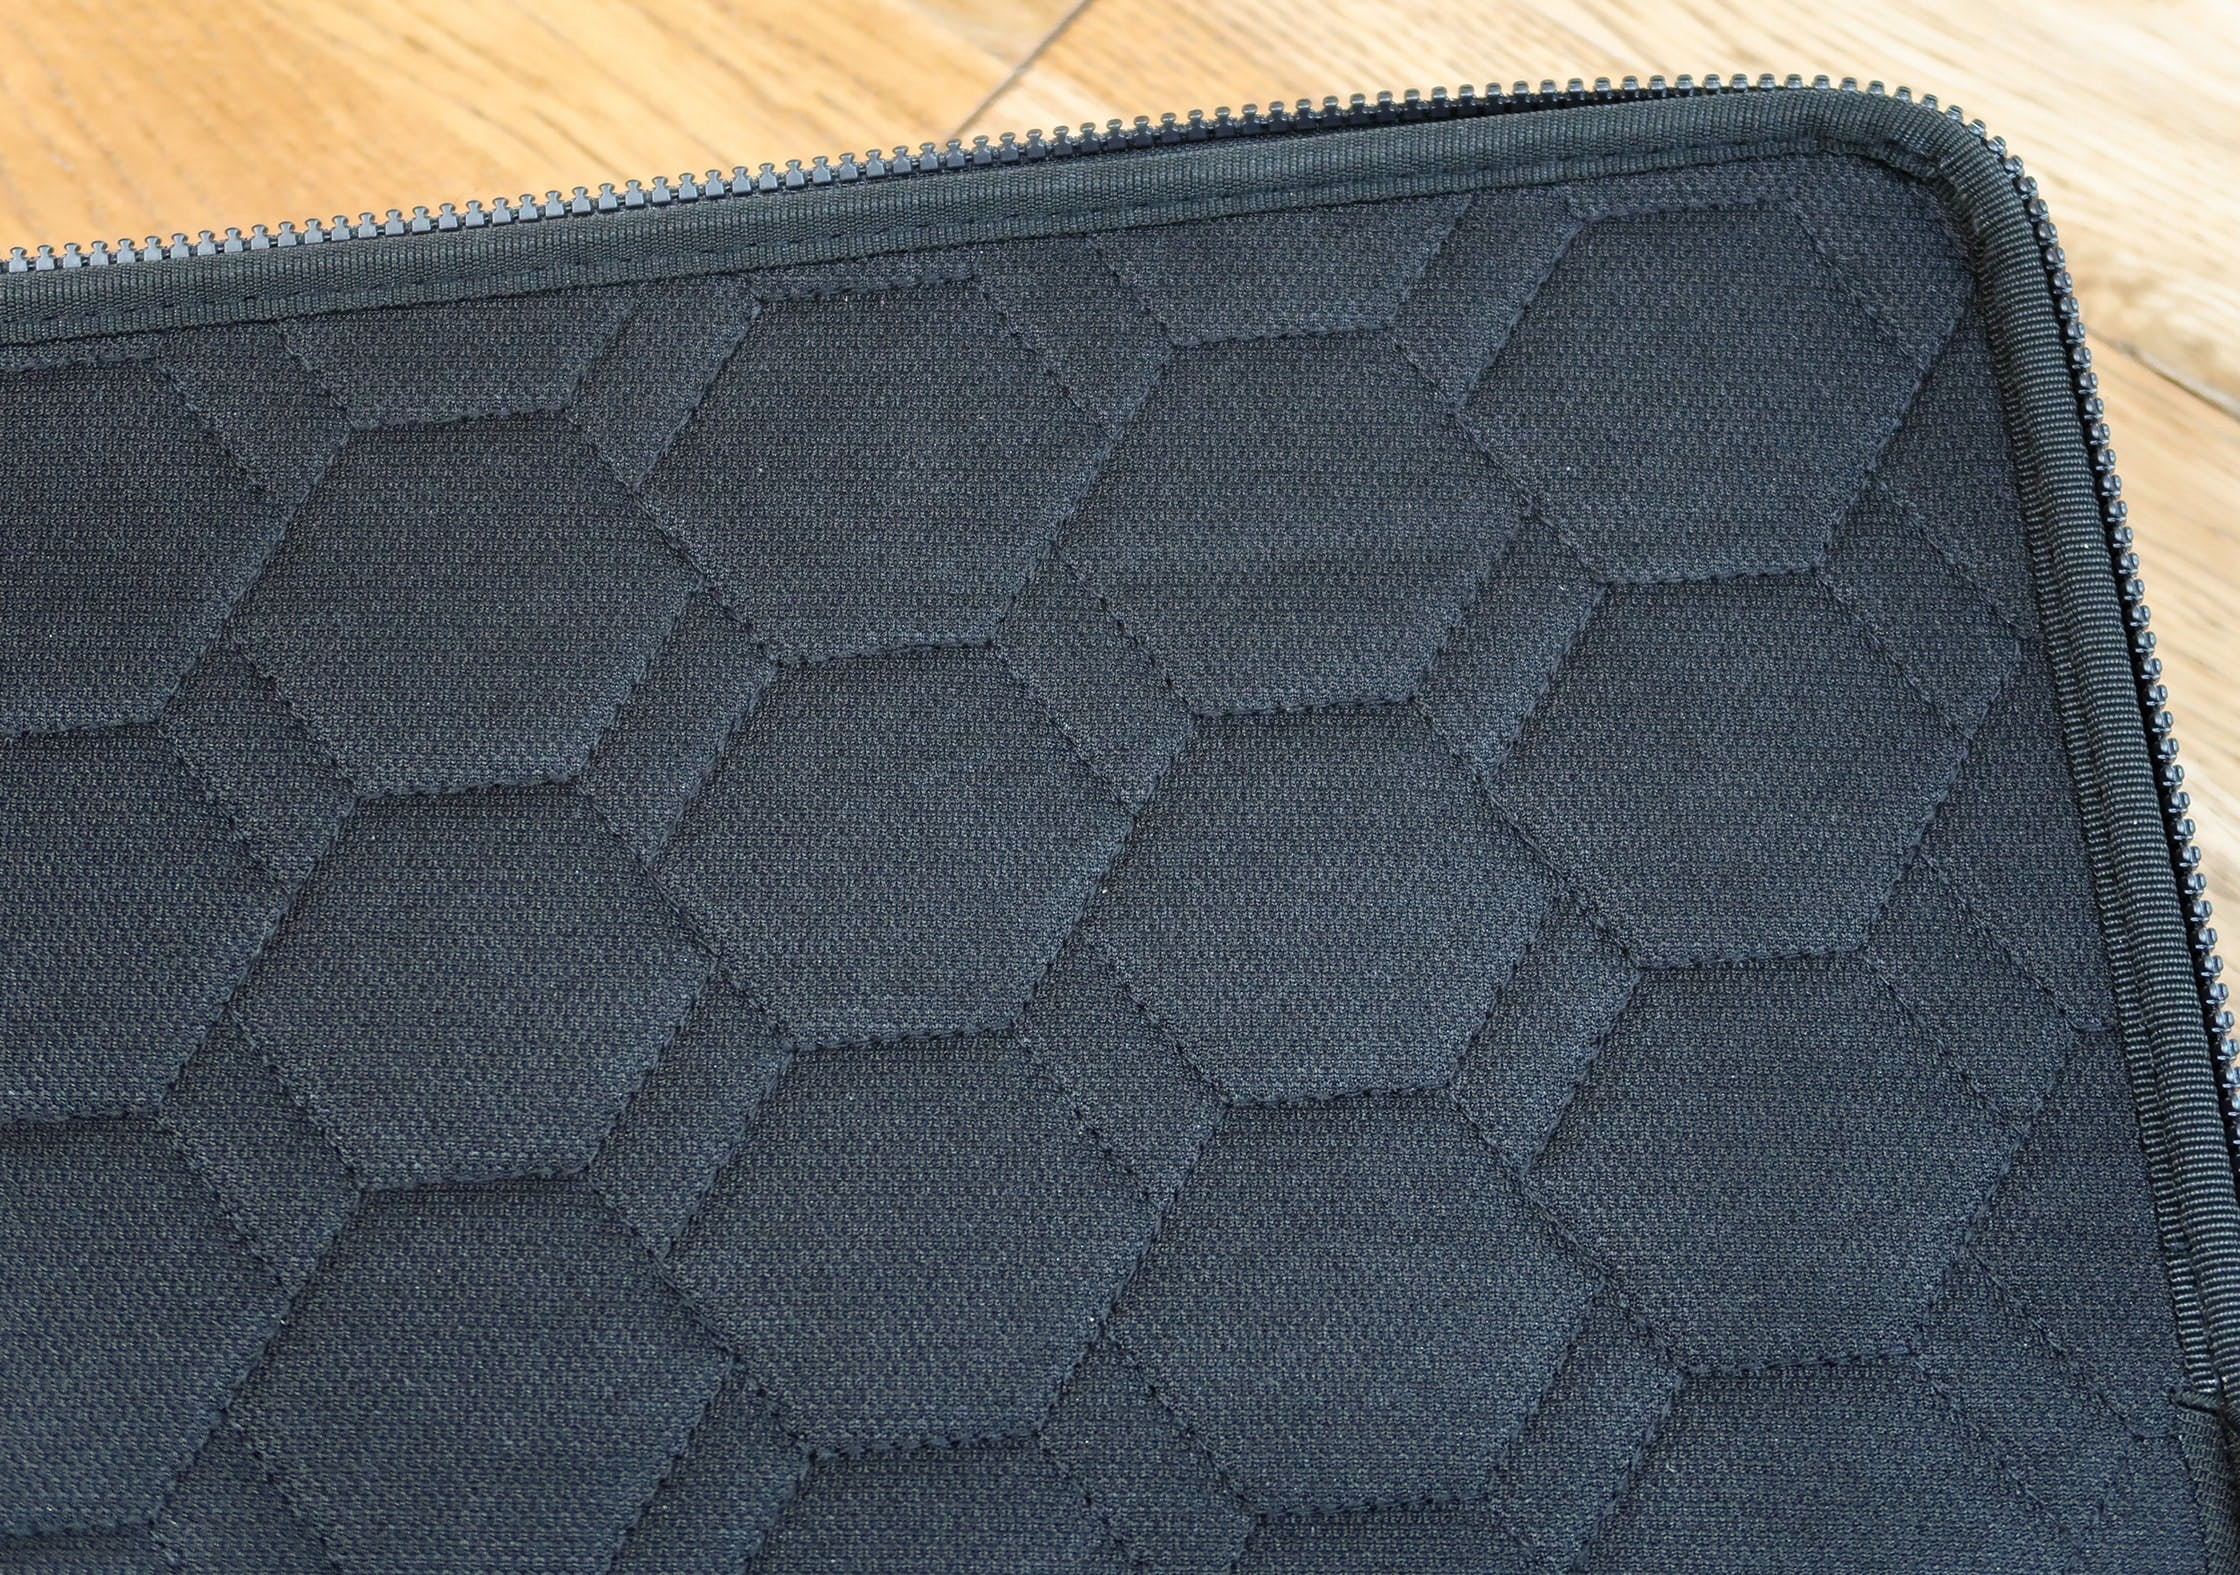 Interior Padding Of The Thule Gauntlet 3.0 Laptop Sleeve